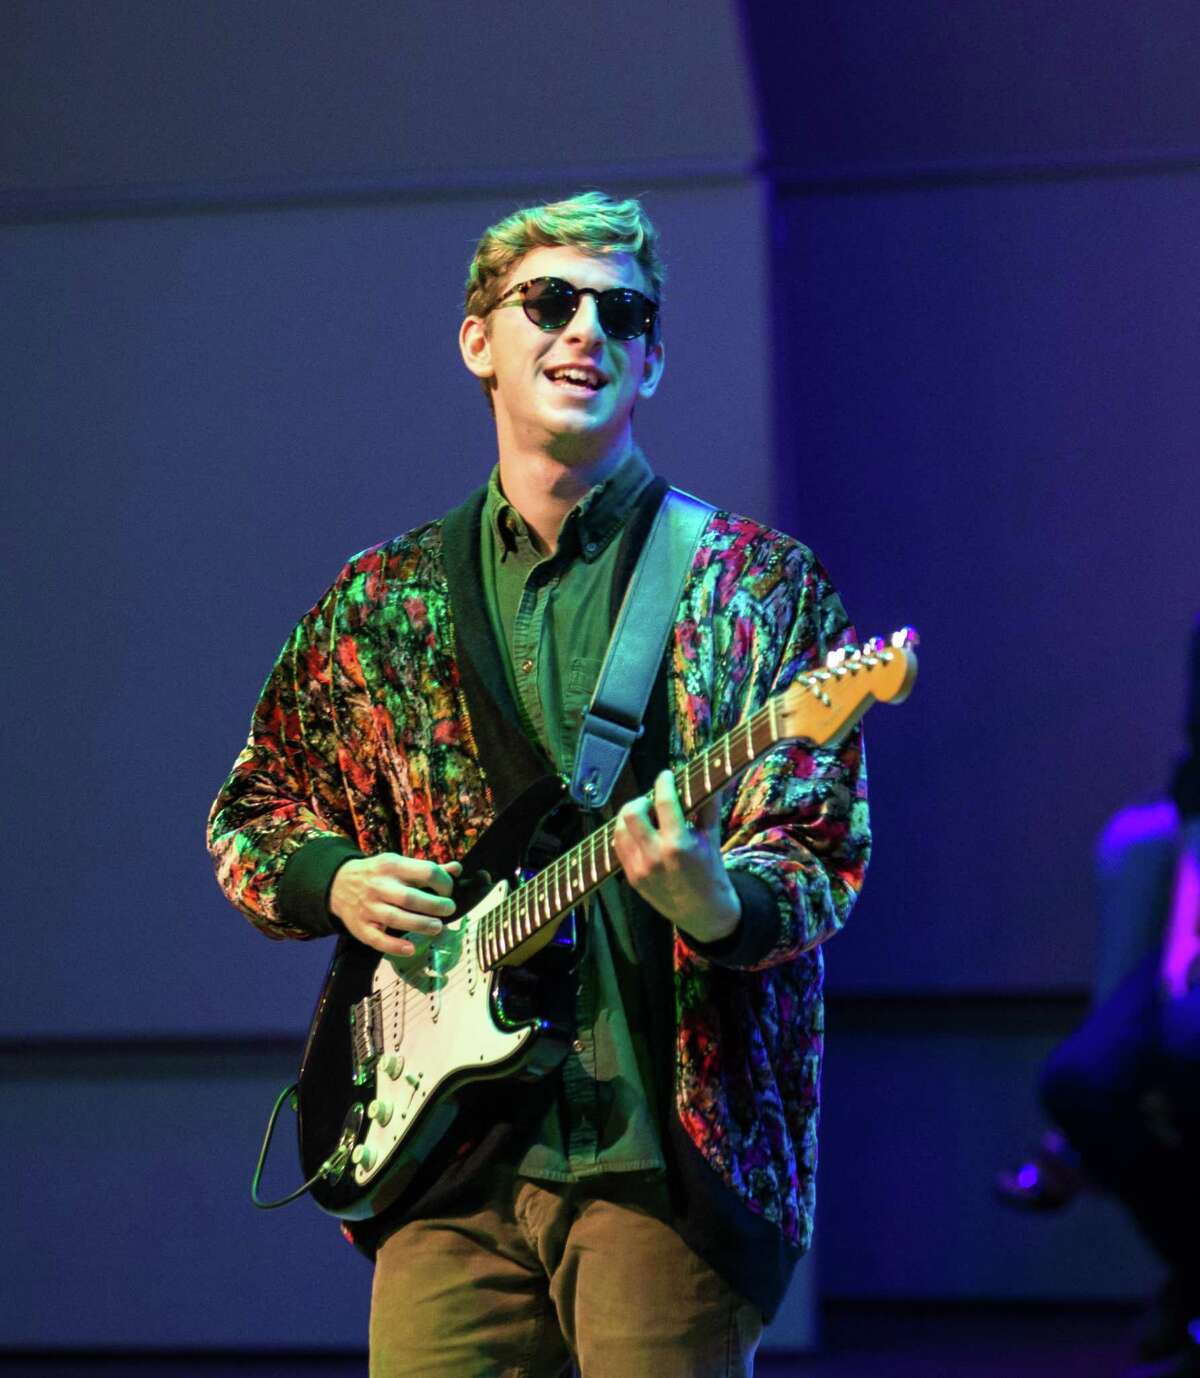 A student performs during last fall's annual Beatlemore Skidmania concert at the Zankel Music Center at Skidmore College in Saratoga Springs. (Christopher Massa/Skidmore College)